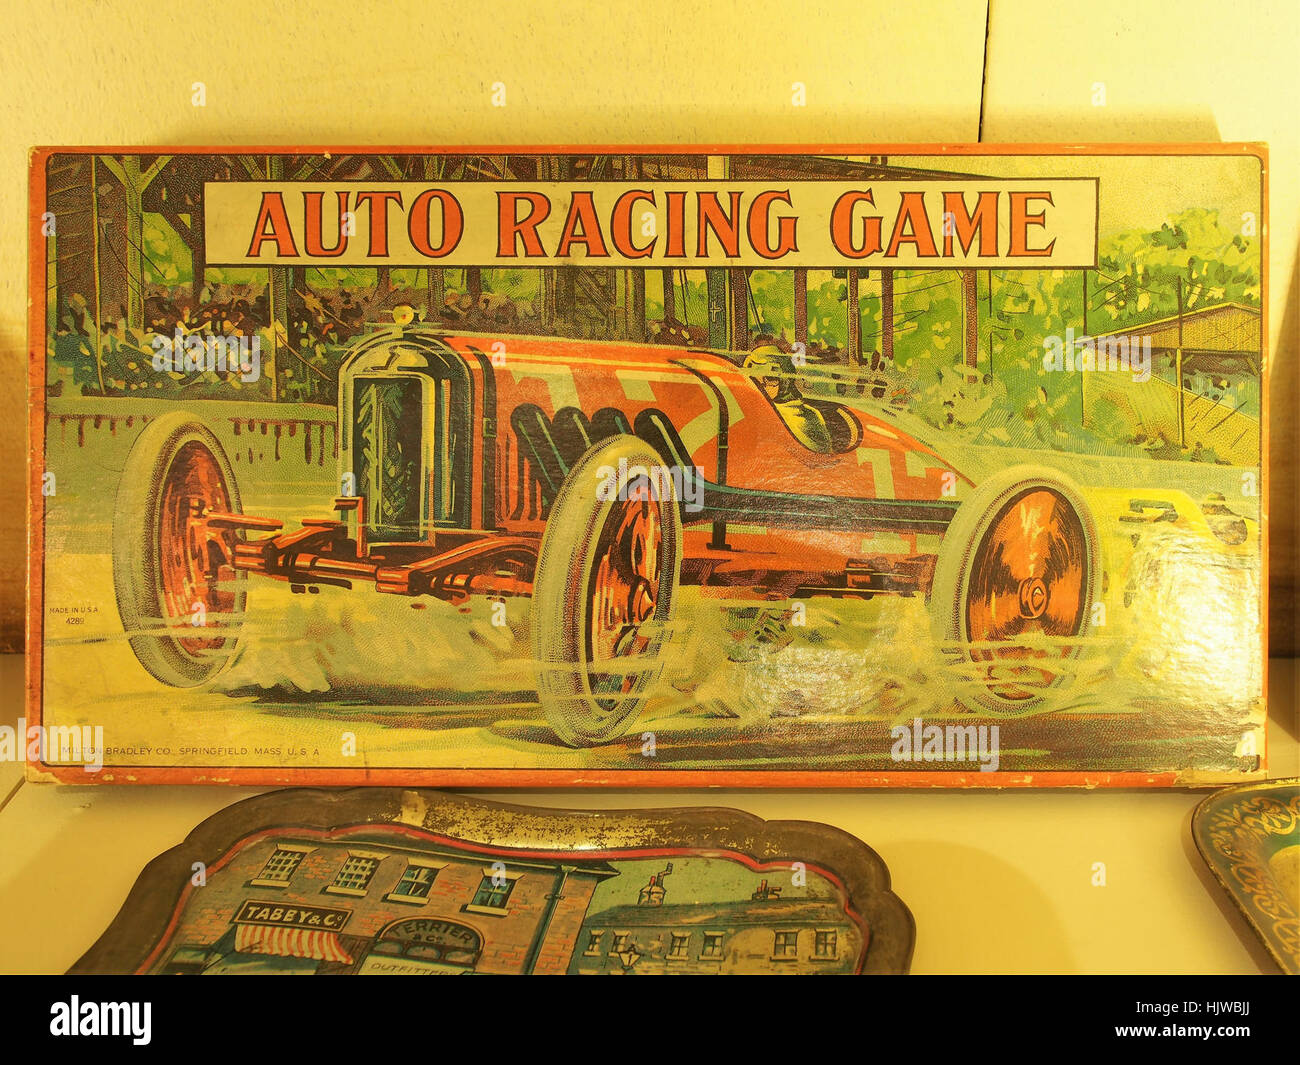 Auto Racing Game in the Louwman museum Stock Photo